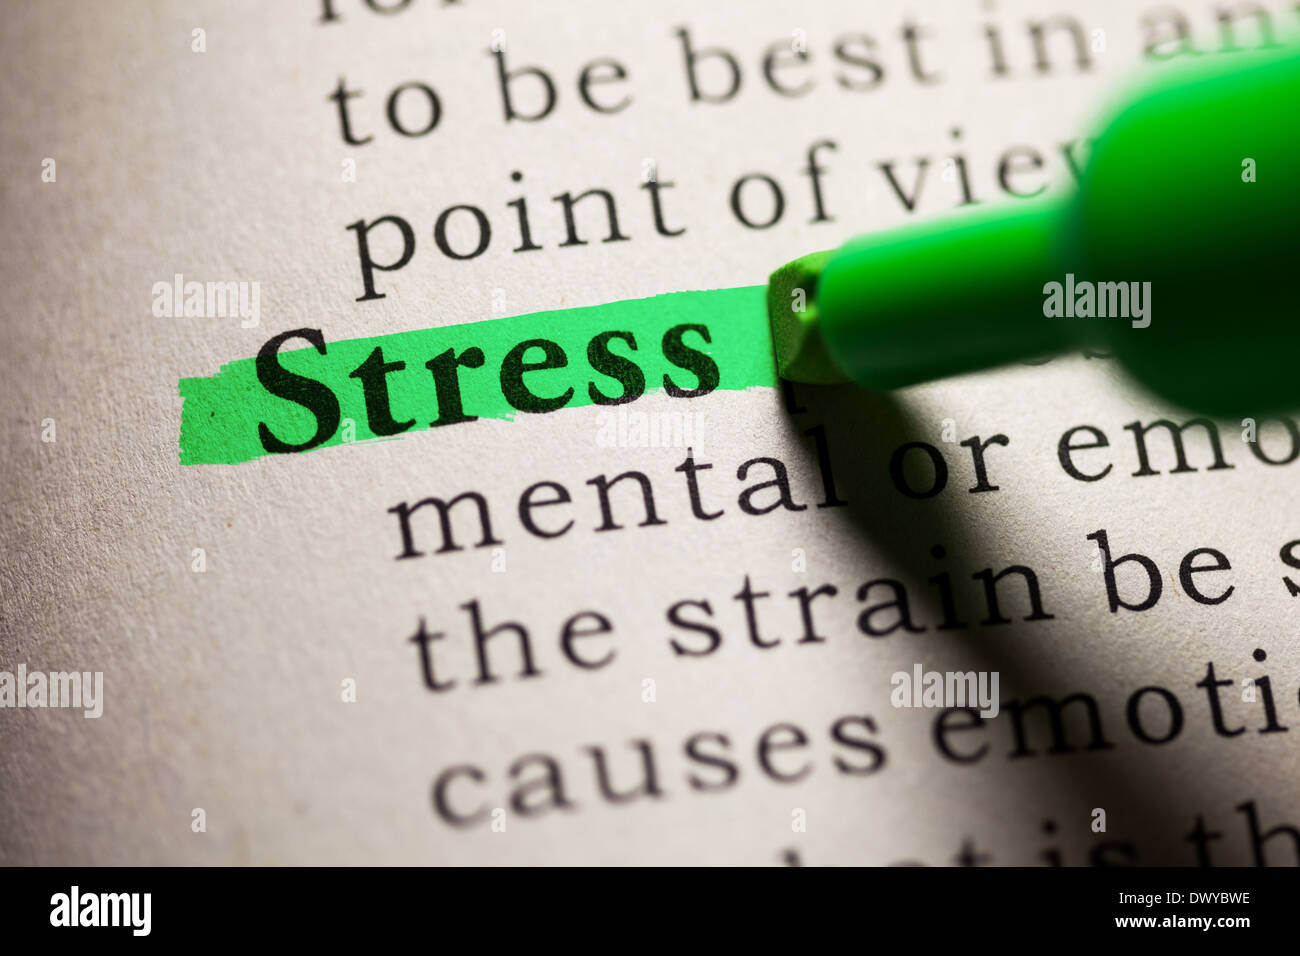 fake dictionary, definition of the word stress stock photo: 67599546